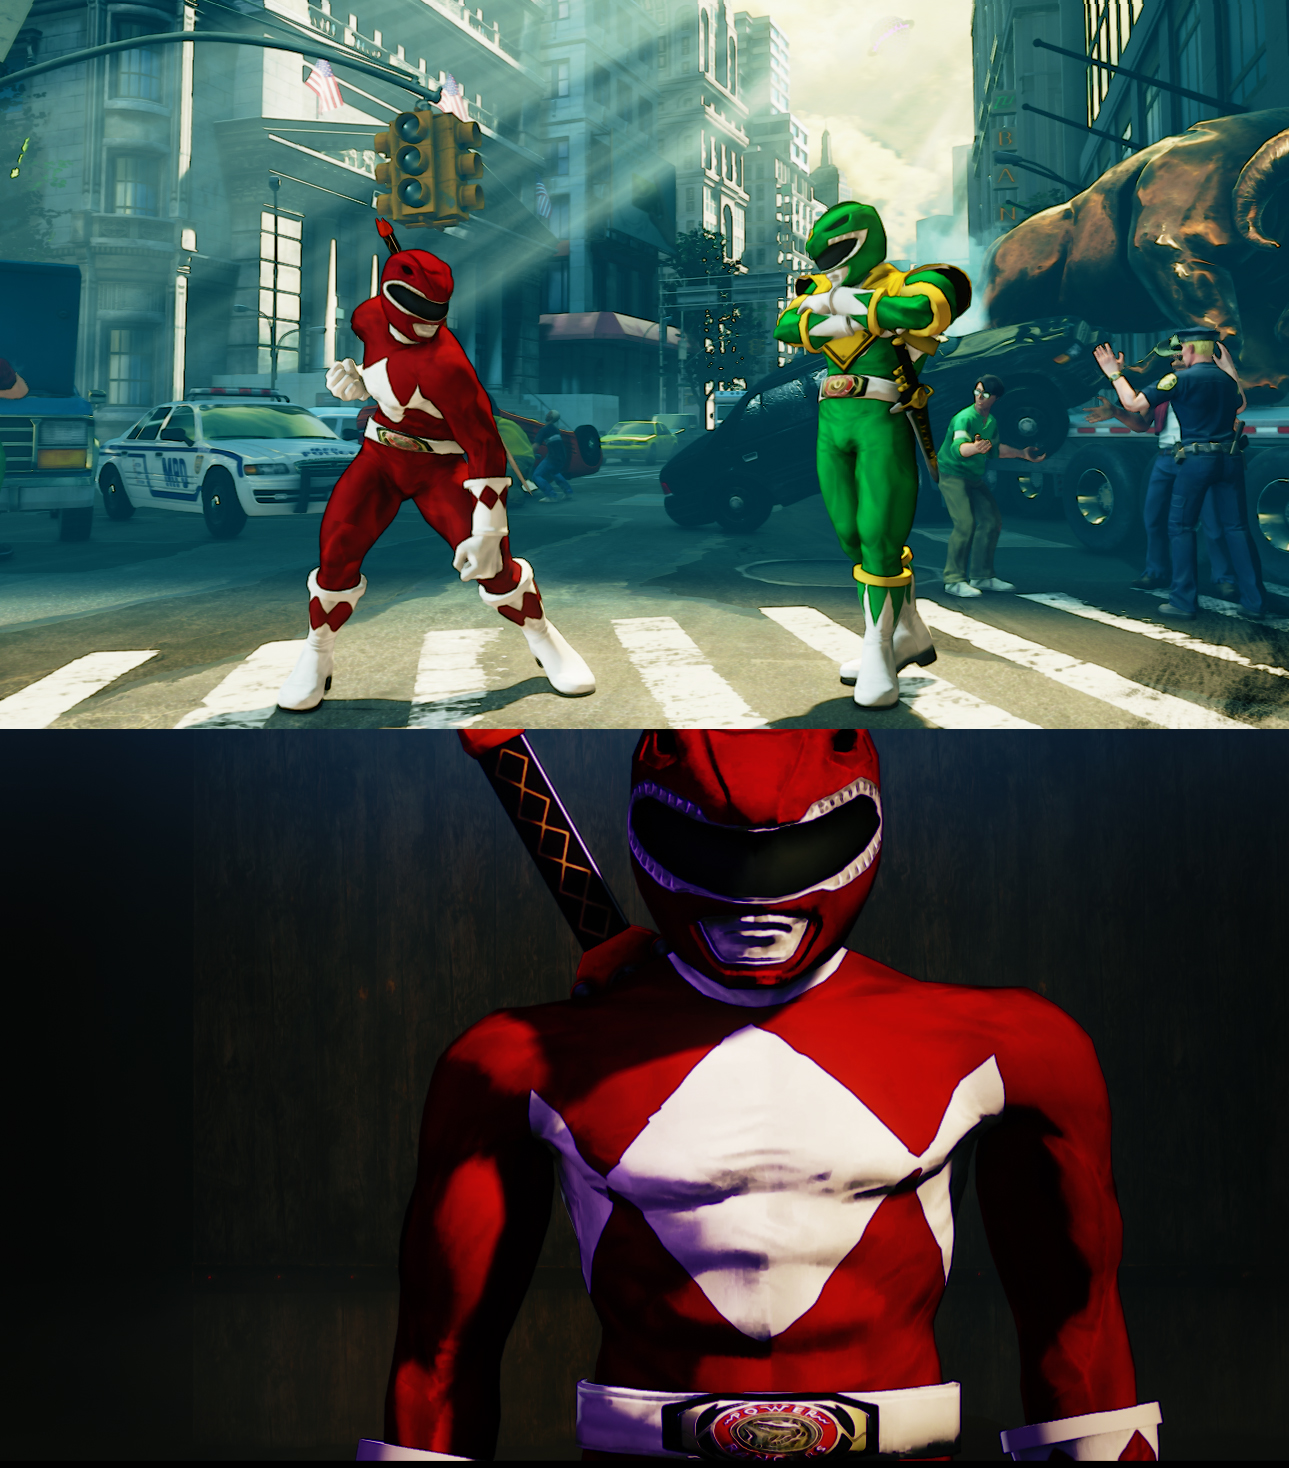 sfv_nash_as_mighty_morphin_red_ranger_by_monkeygigabuster-dadydx5.jpg